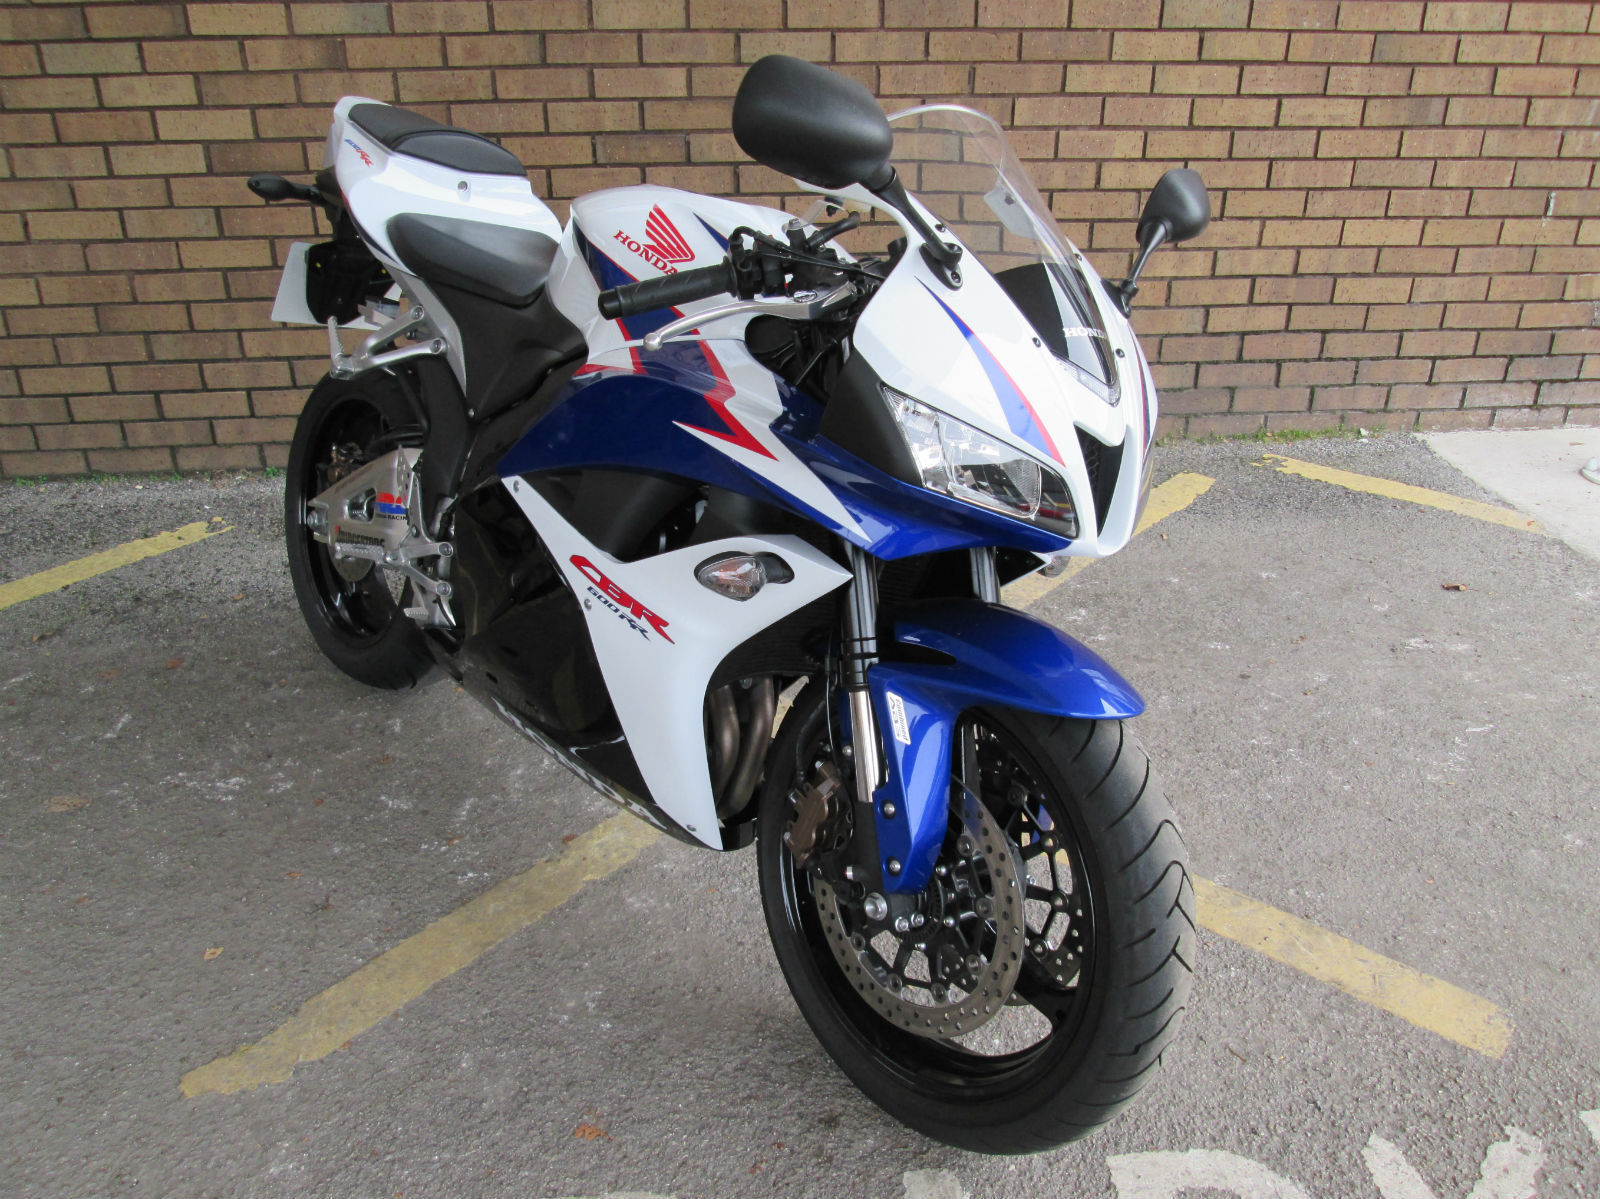 Honda CBR 600 RA-B ABS Super Sports, Light Weight Sports